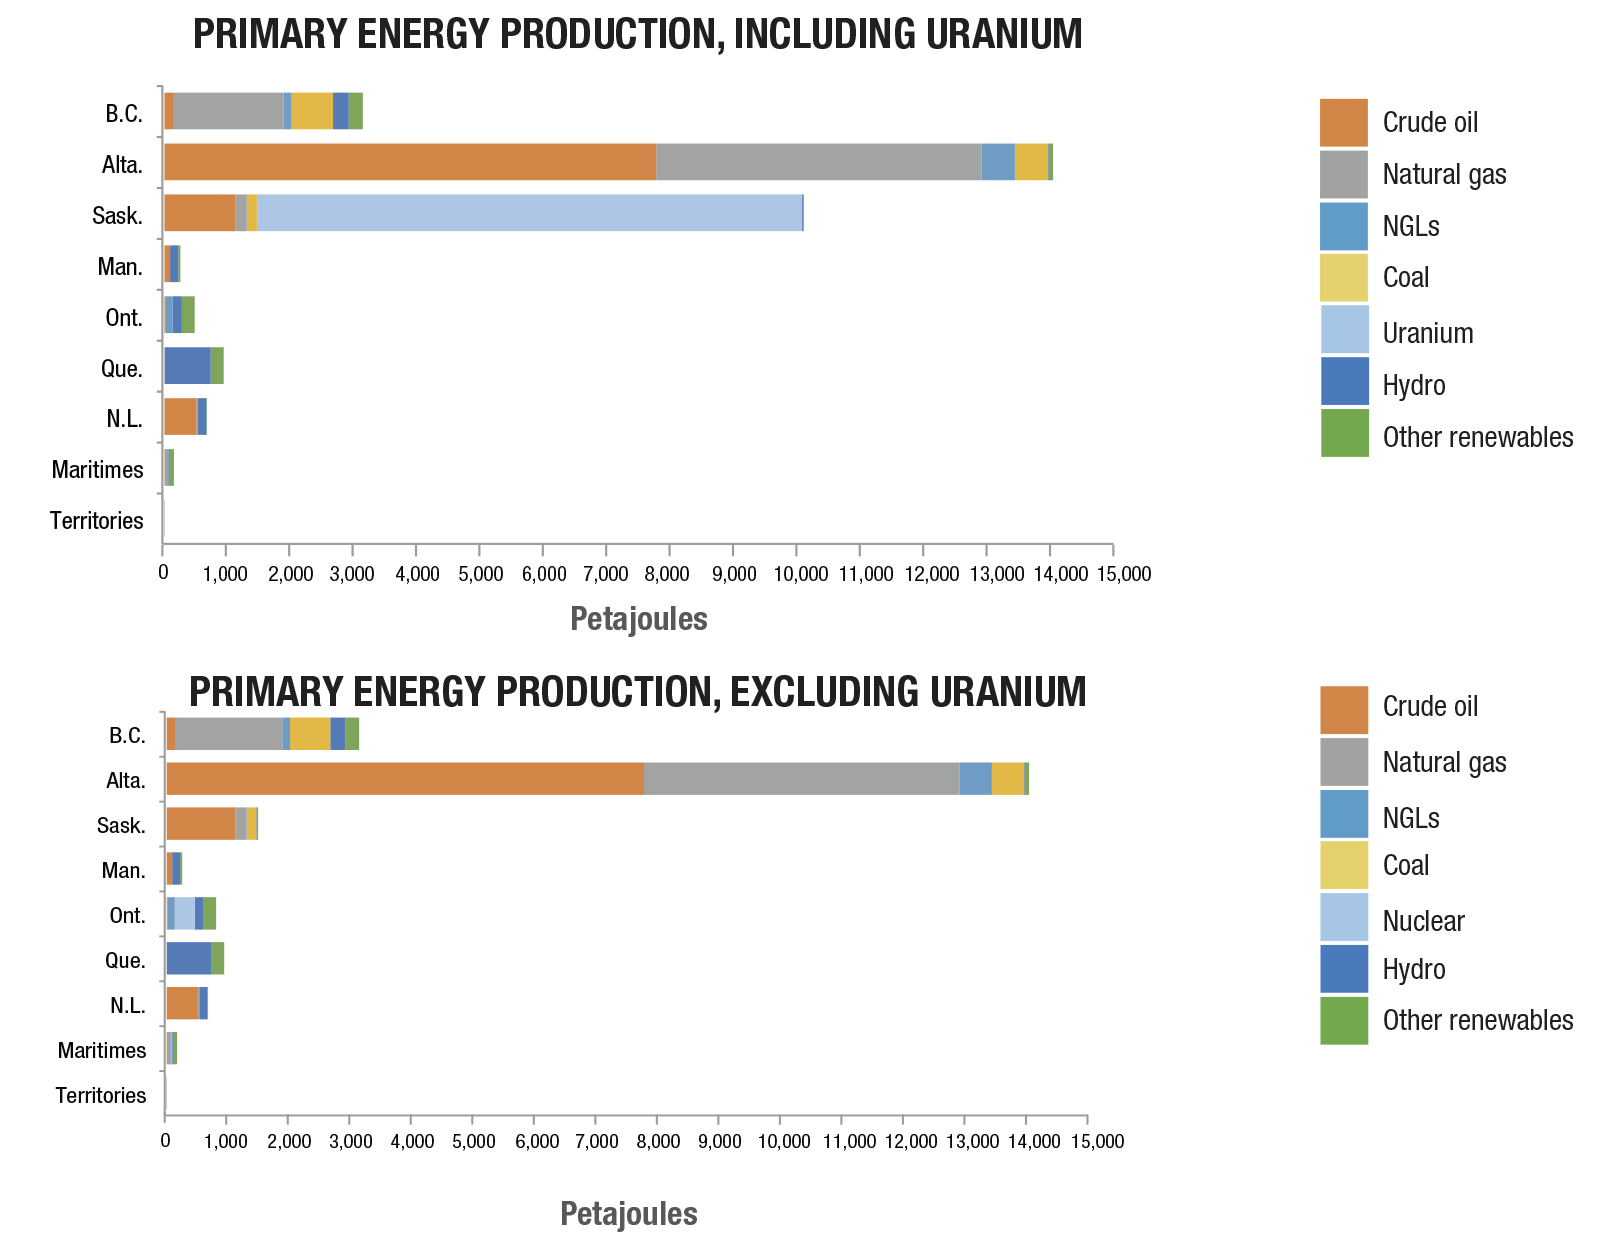 Primary energy production including uranium bar graph